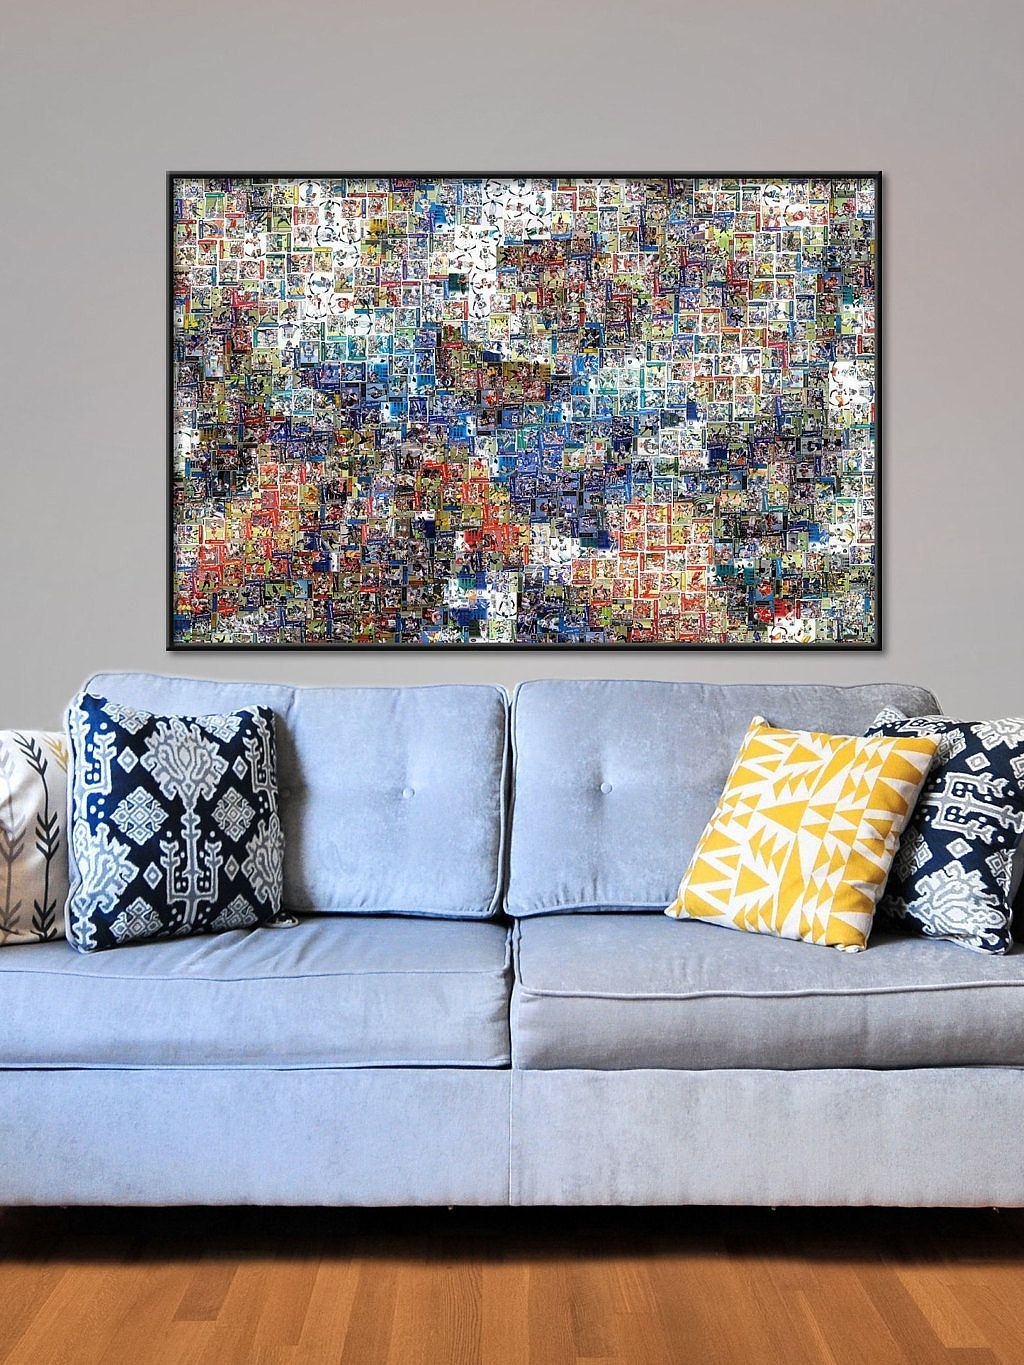 Football Wall Art – Matthew Stafford Mosaic – Detroit Lions Intended For Most Up To Date Nfl Wall Art (Gallery 8 of 15)